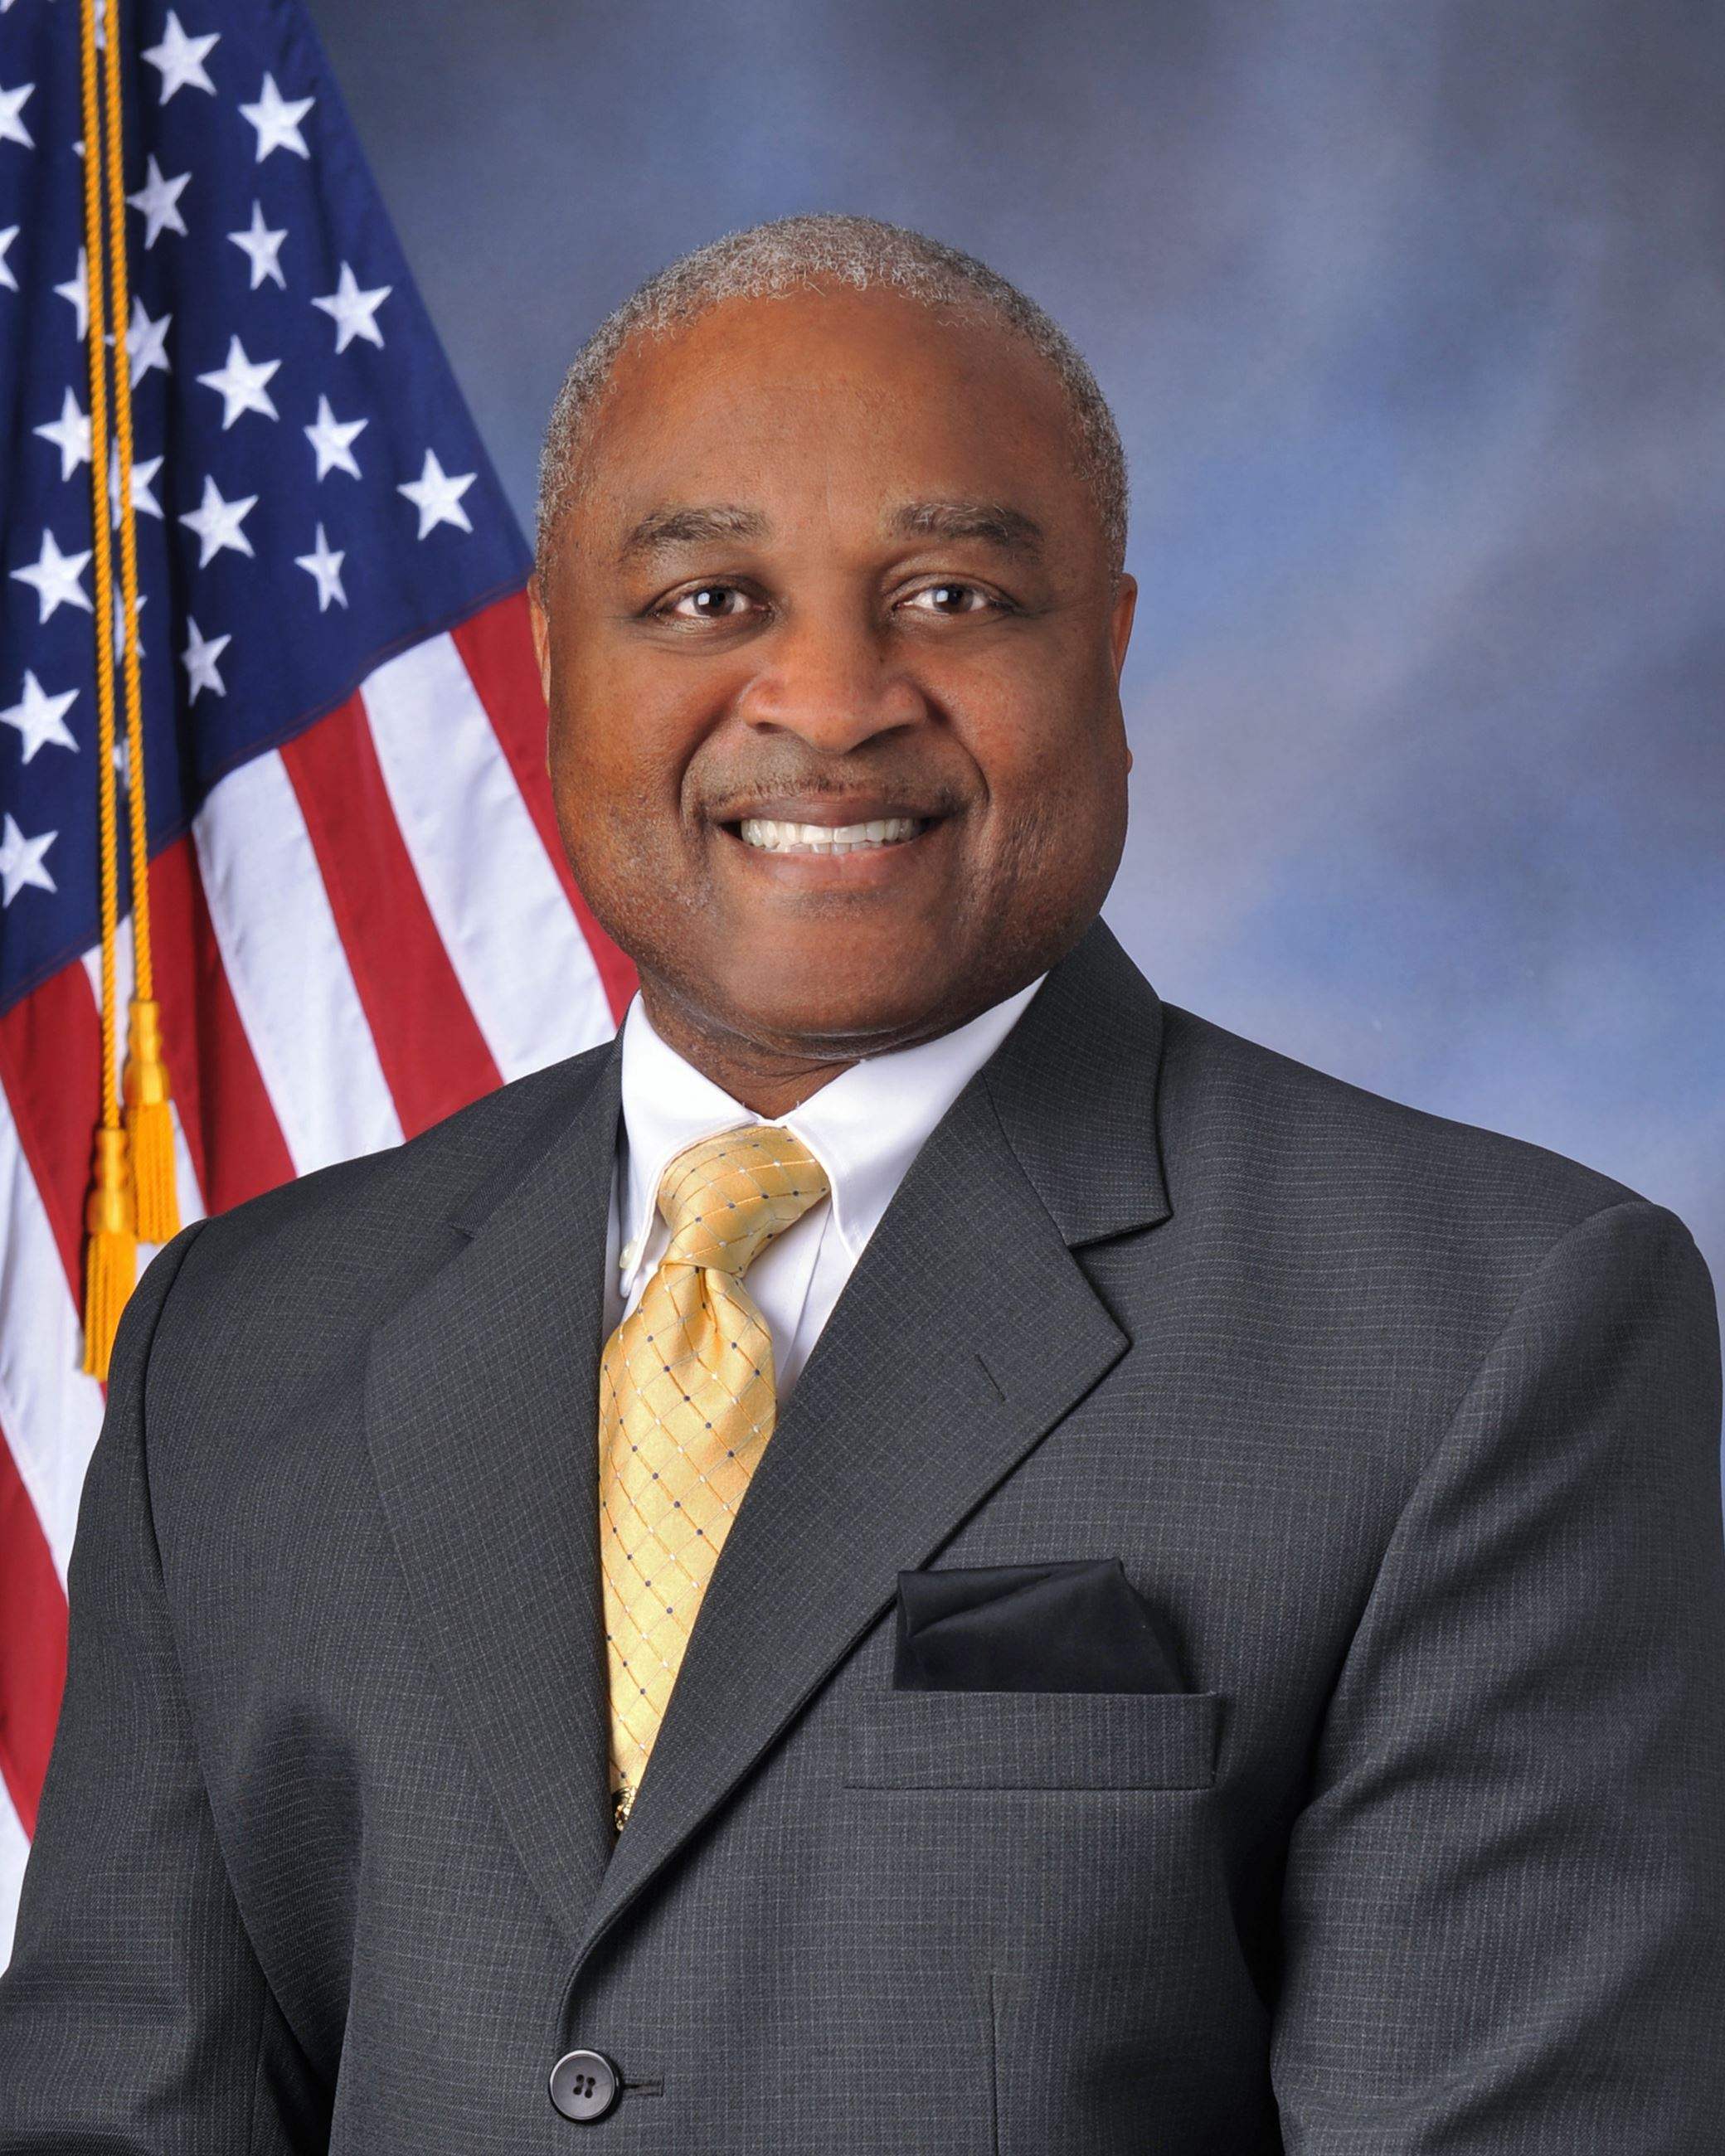 Photo of Accreditation Manager Tyrone Wilson